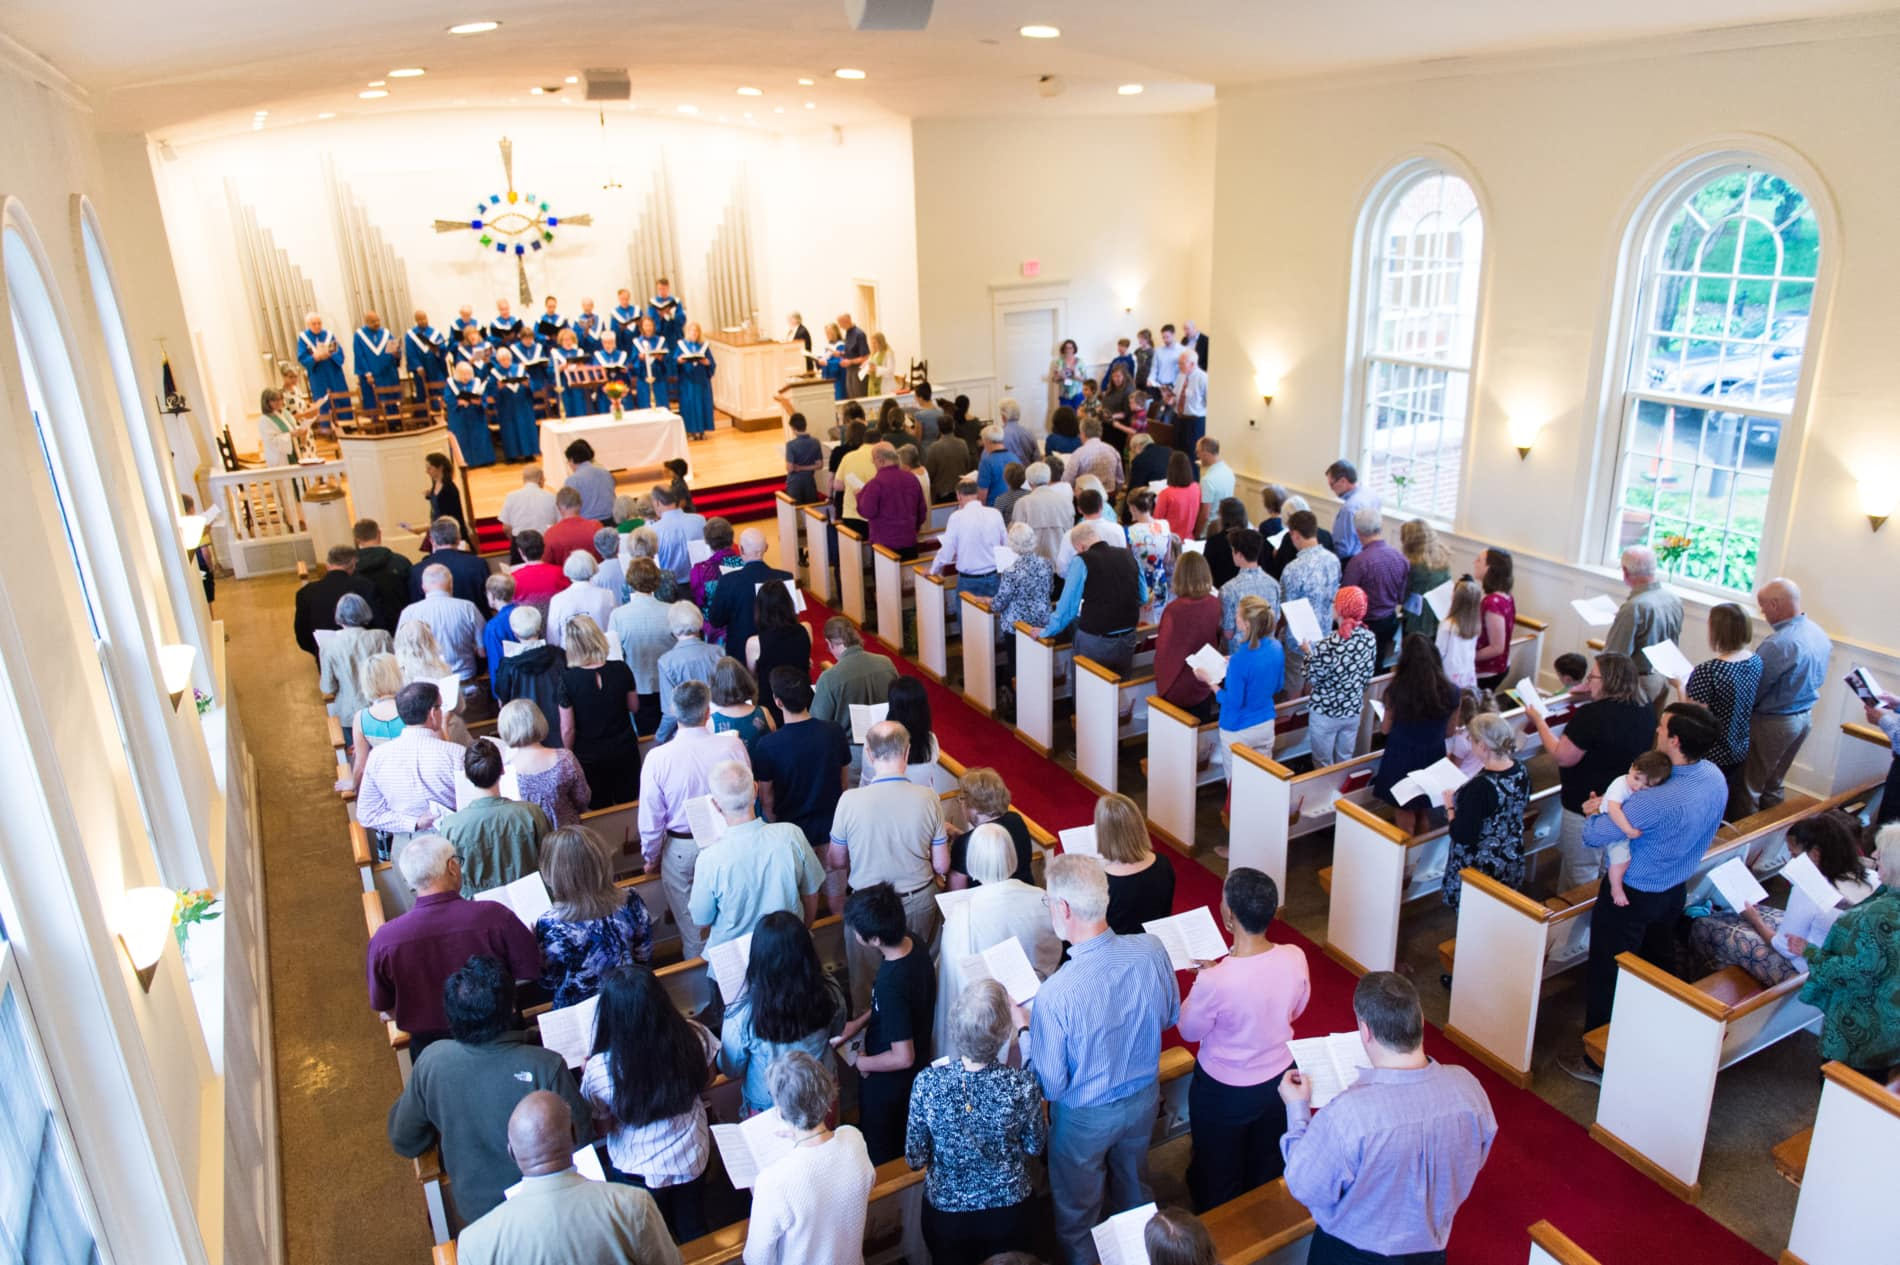 A wide angle view of the Rock Spring sanctuary full of people in worship